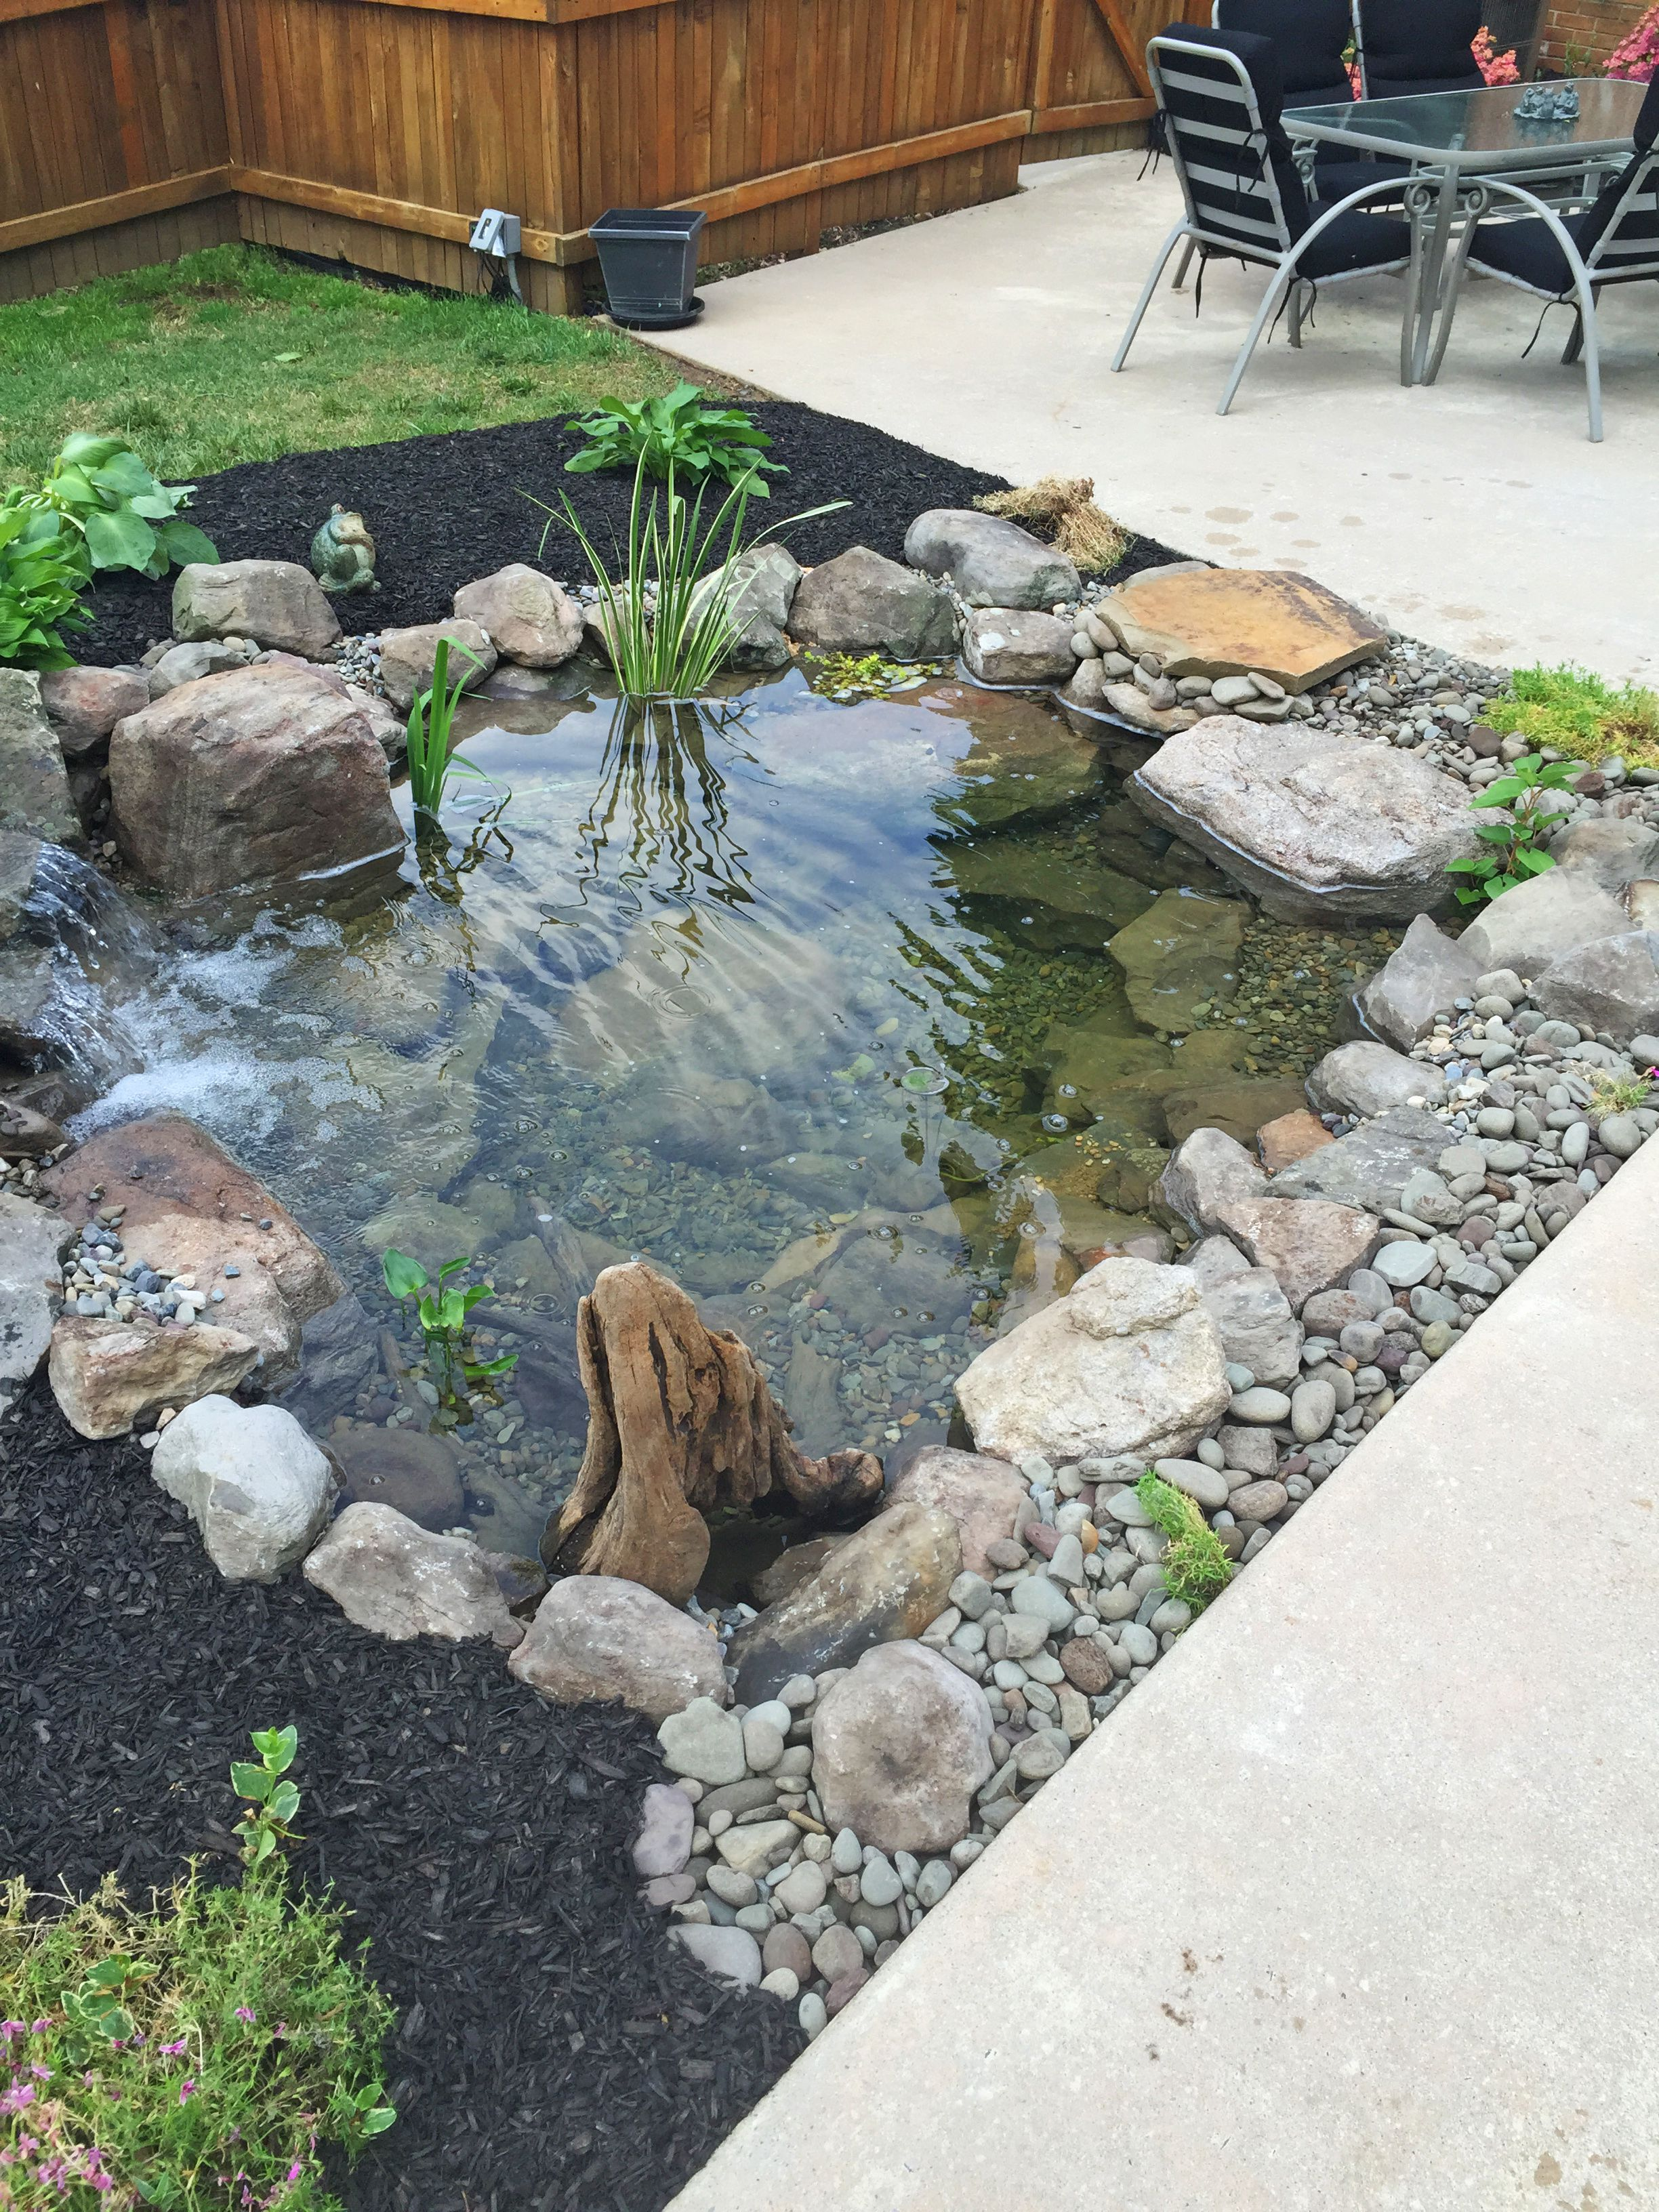 Backyard fish pond waterfall koi water garden waterscapes for Pond features